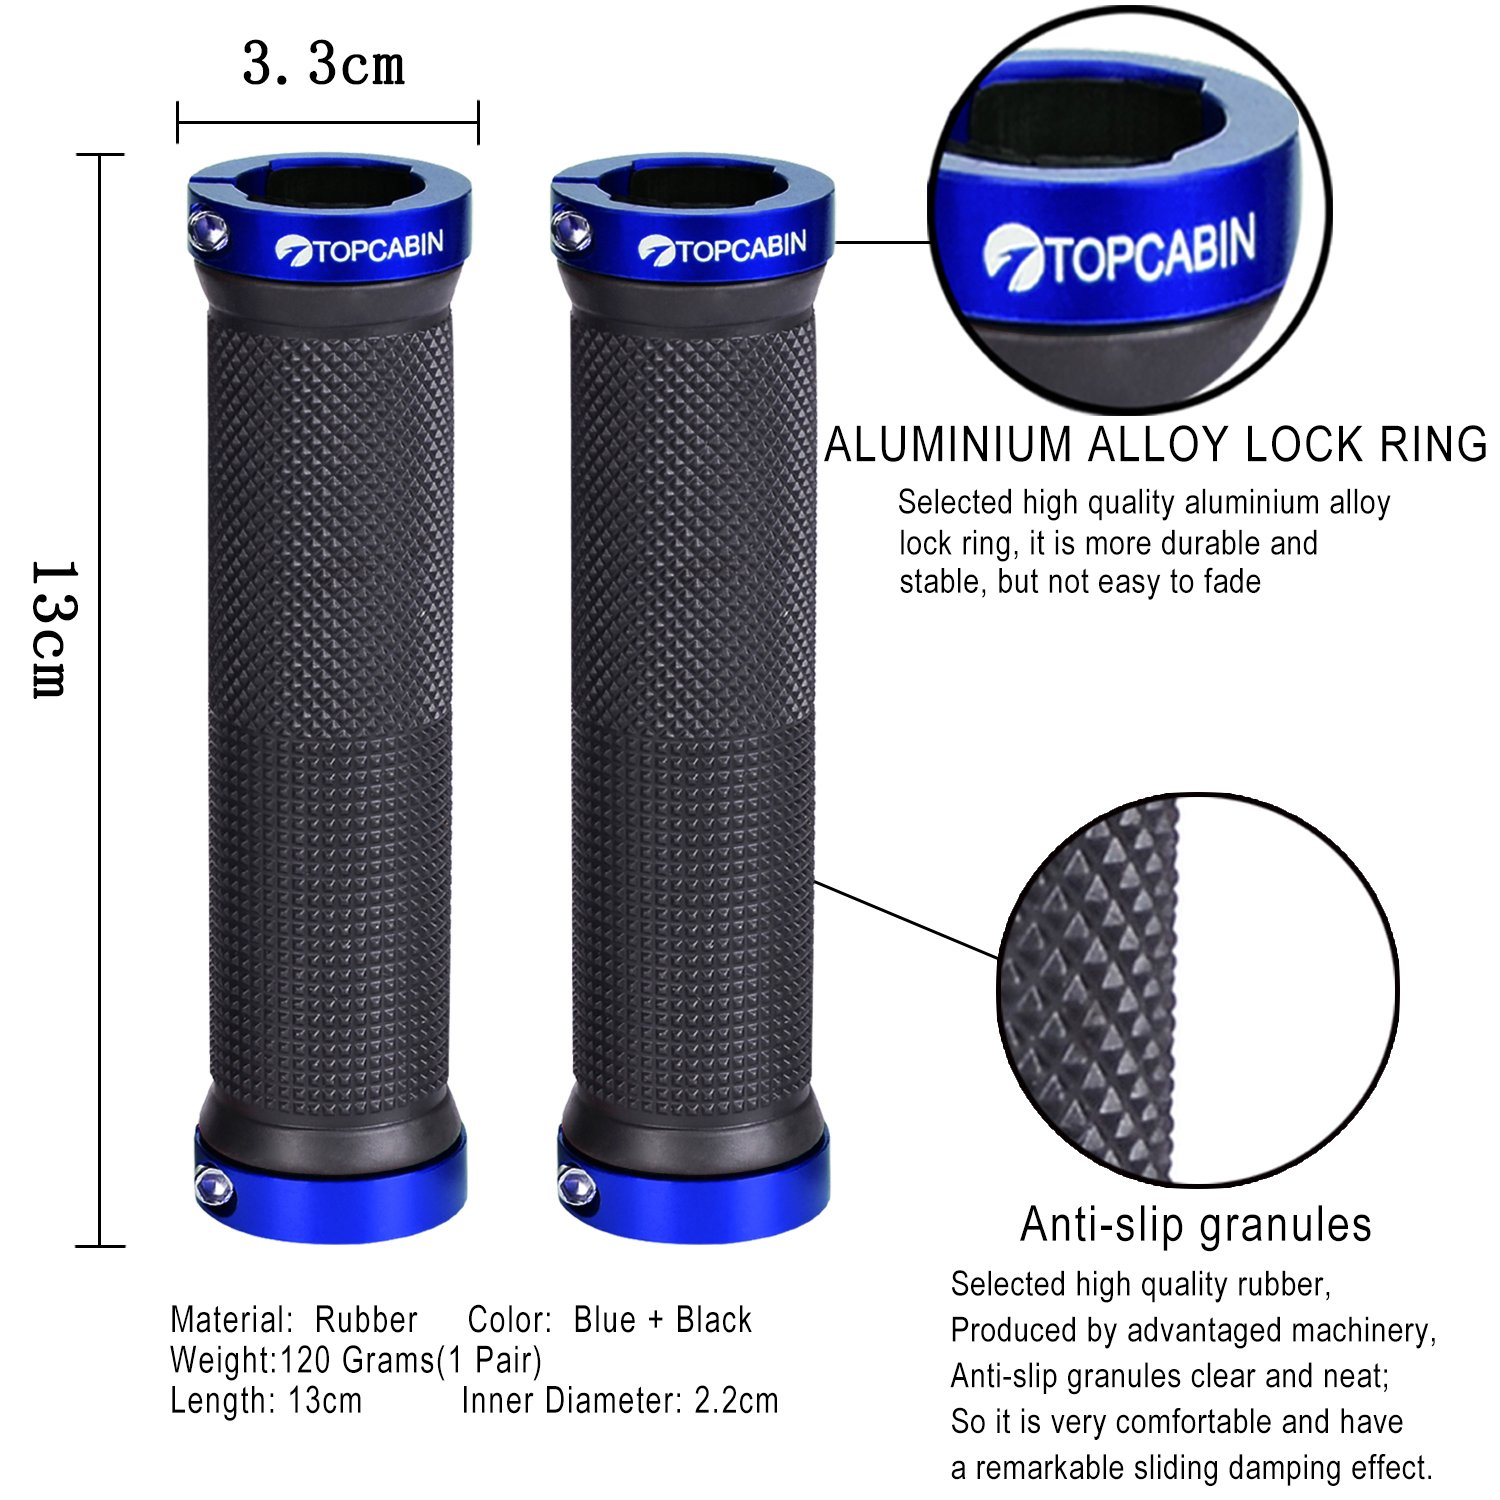 Topcabin Double Lock On Locking Bicycle Handlebar Grips Cycle Grip High Quality Mountain Bike Bmx Floding A Pair Blue Gold Red Top520006277133